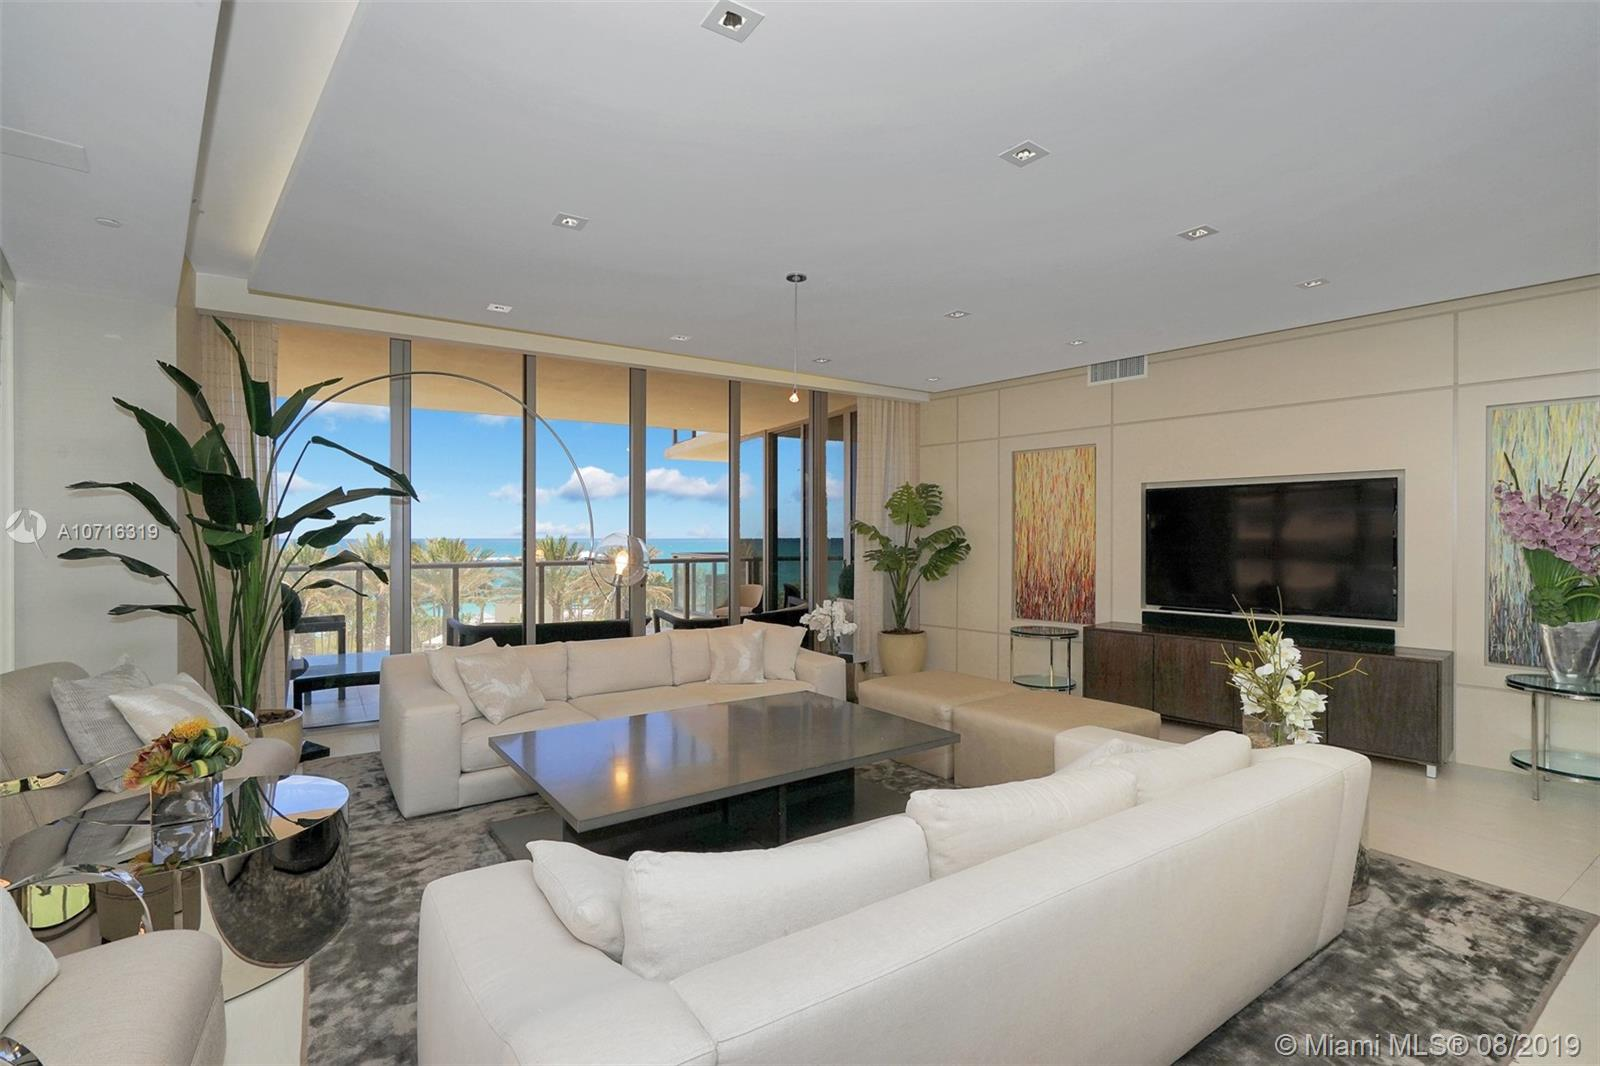 9705 Collins Ave, Unit #501N Luxury Real Estate